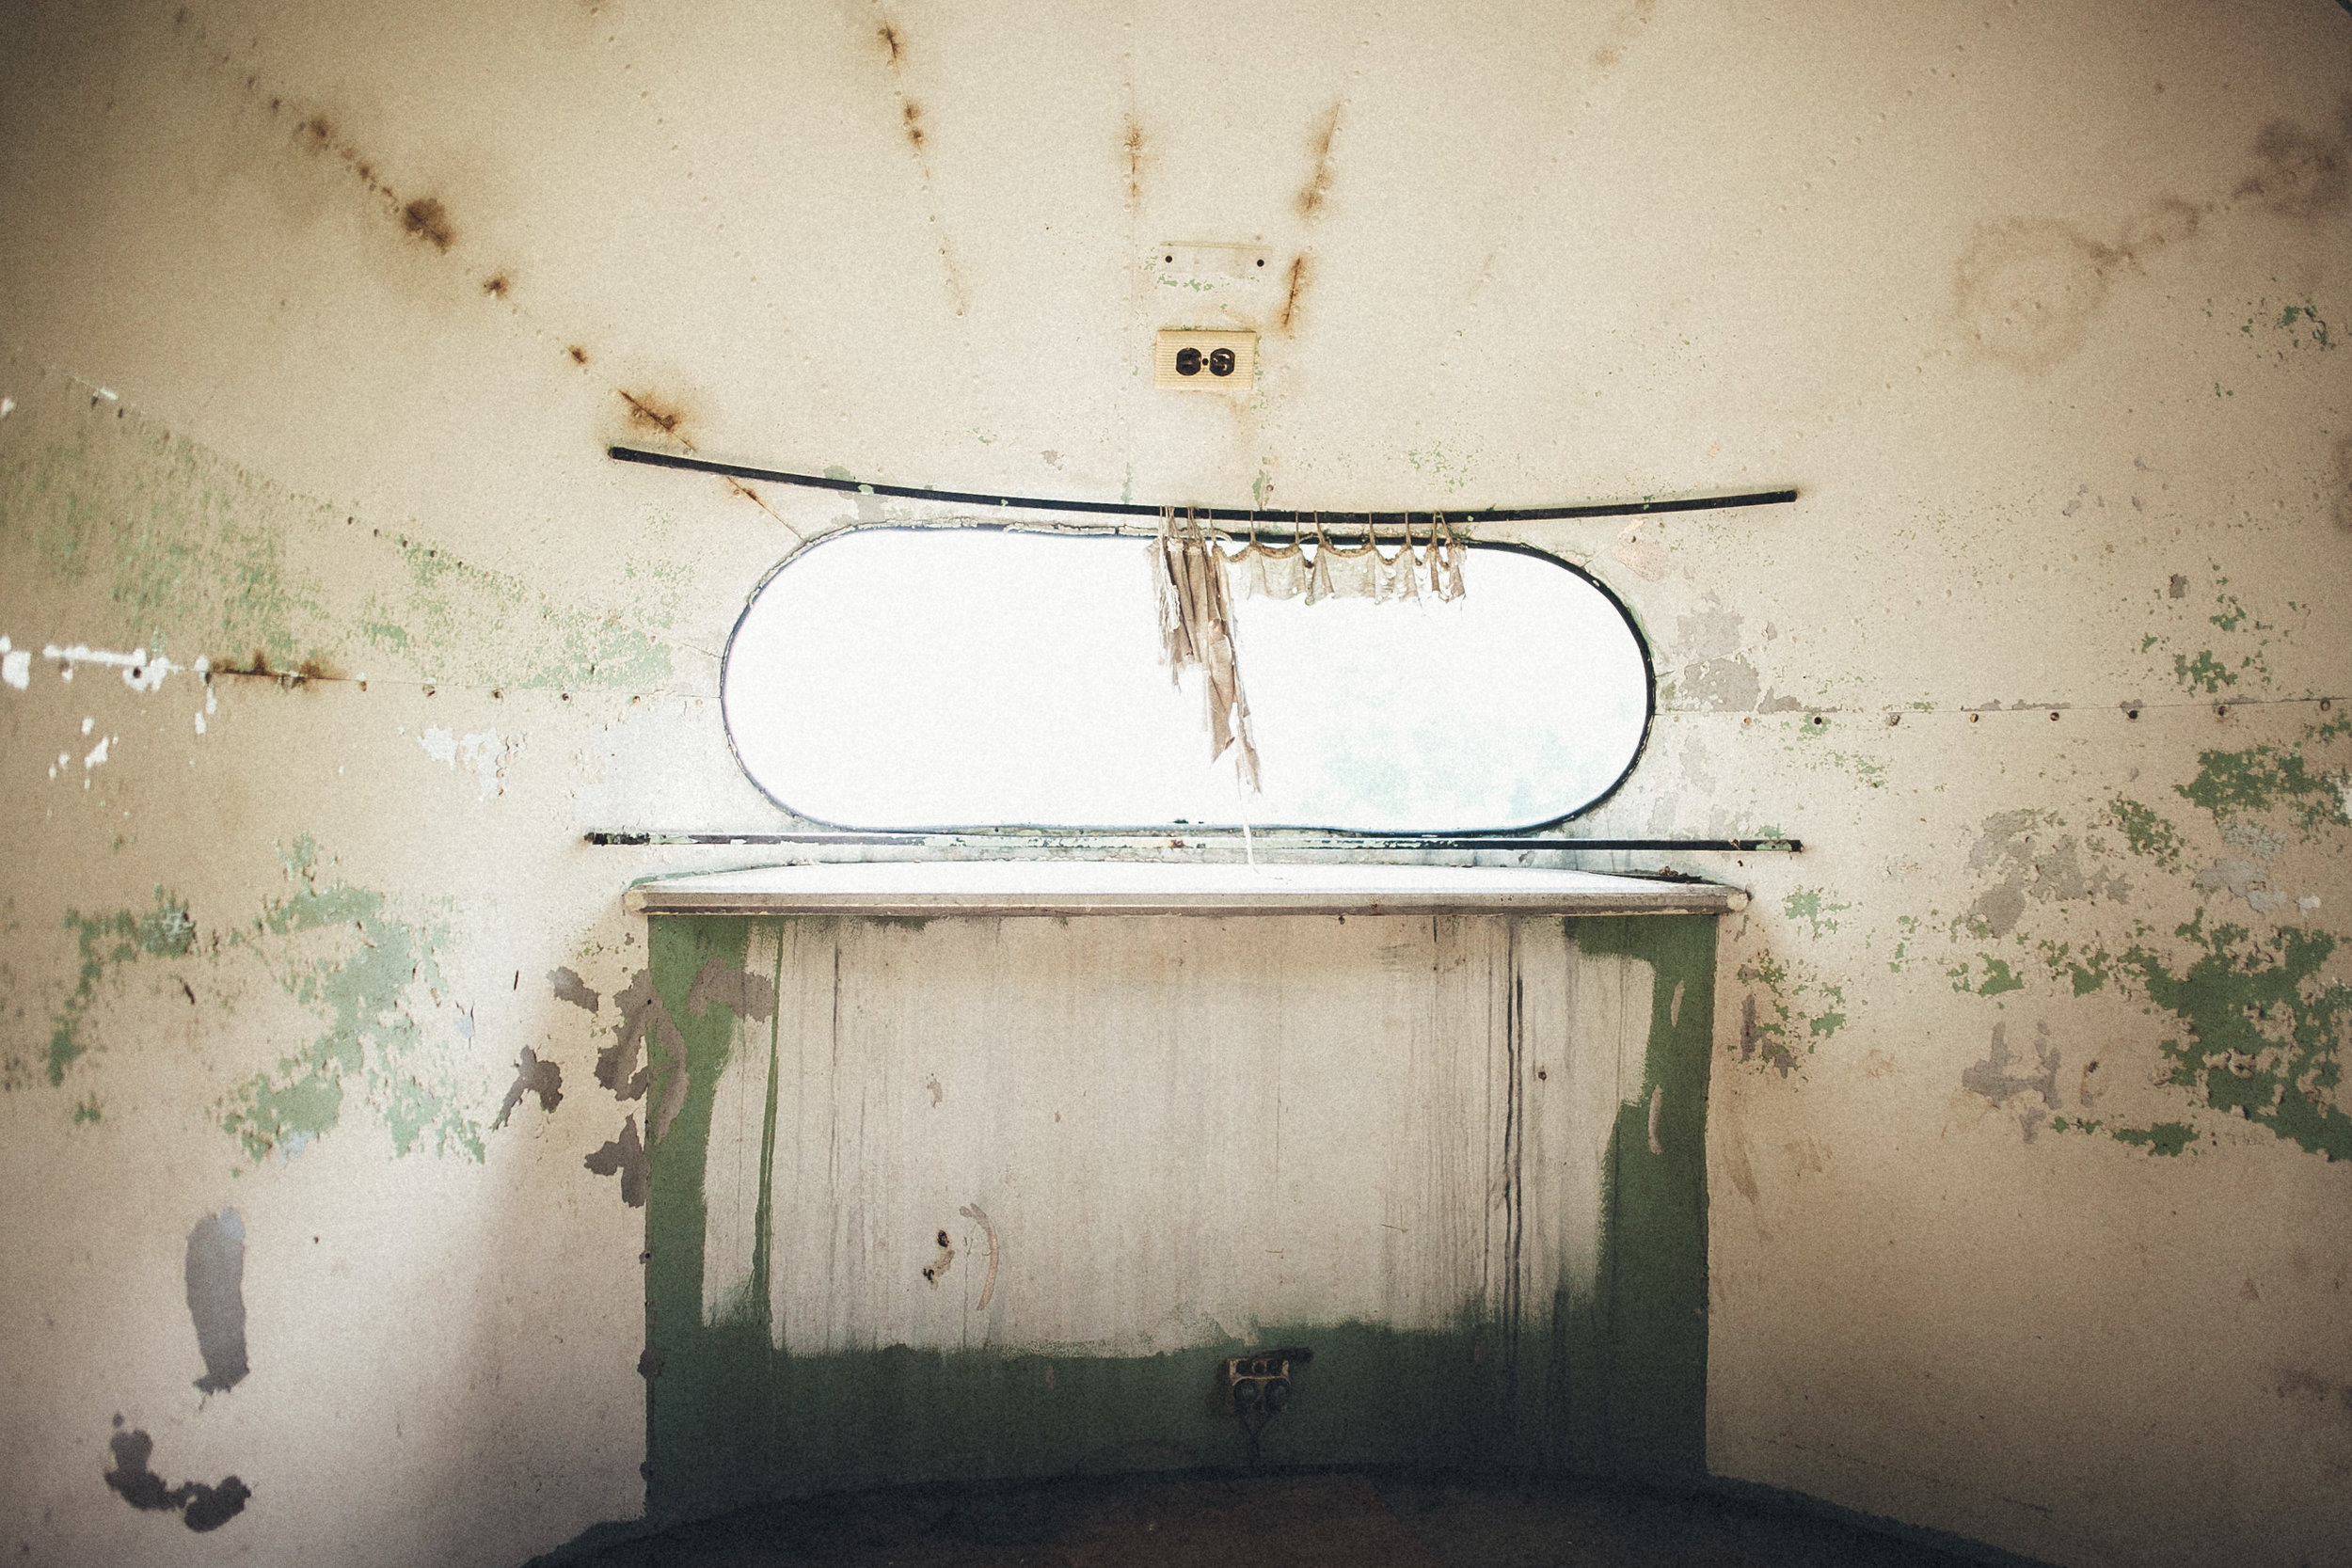 abandoned-airstream-3670.jpg